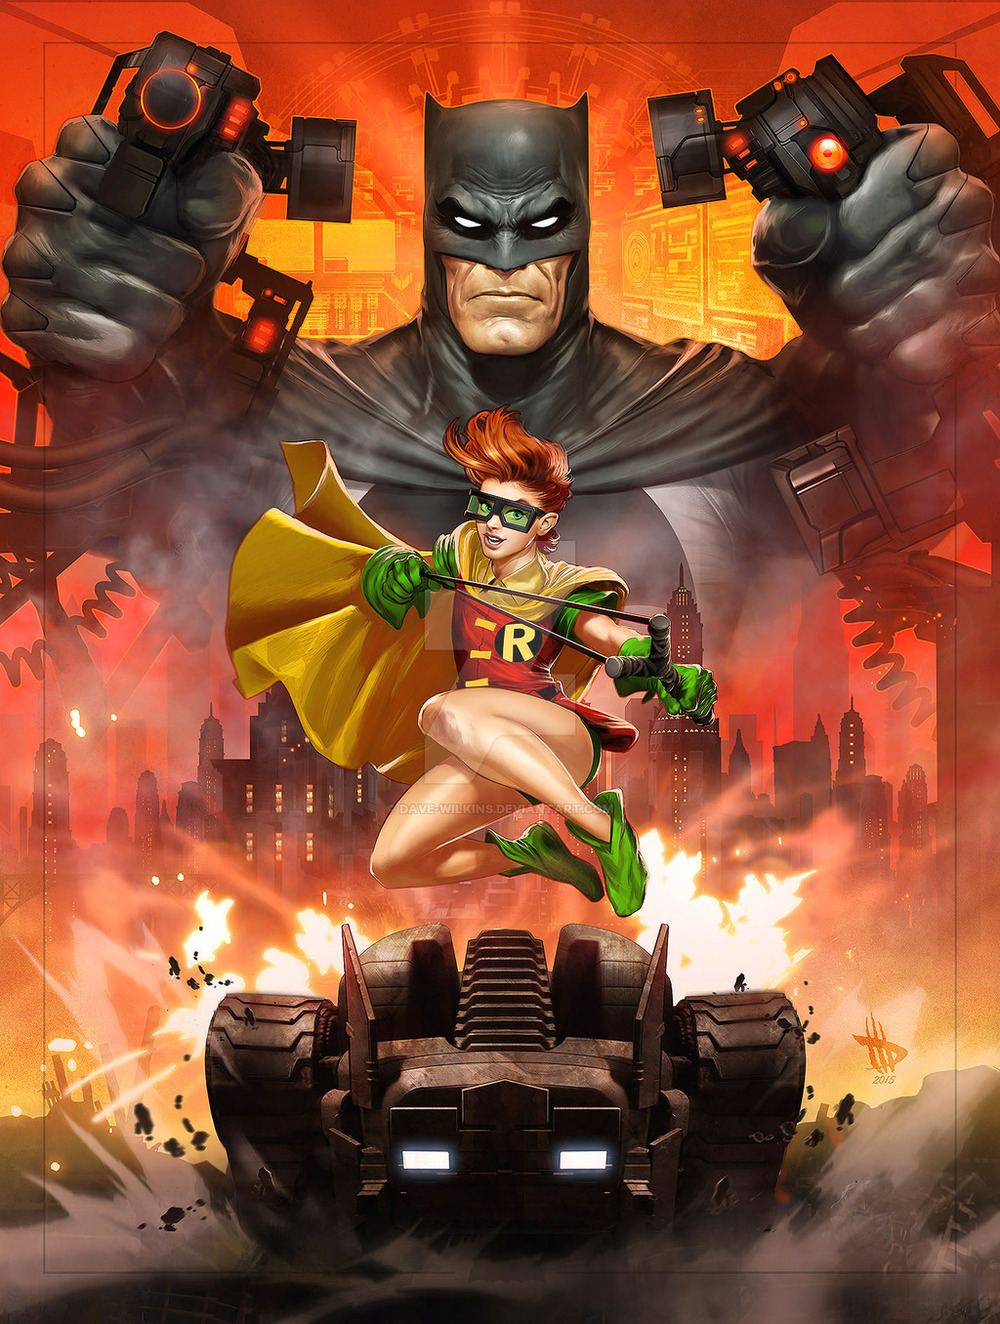 Homepage Full Post Featured: Explosive THE DARK KNIGHT RETURNS Art By Dave Wilkins